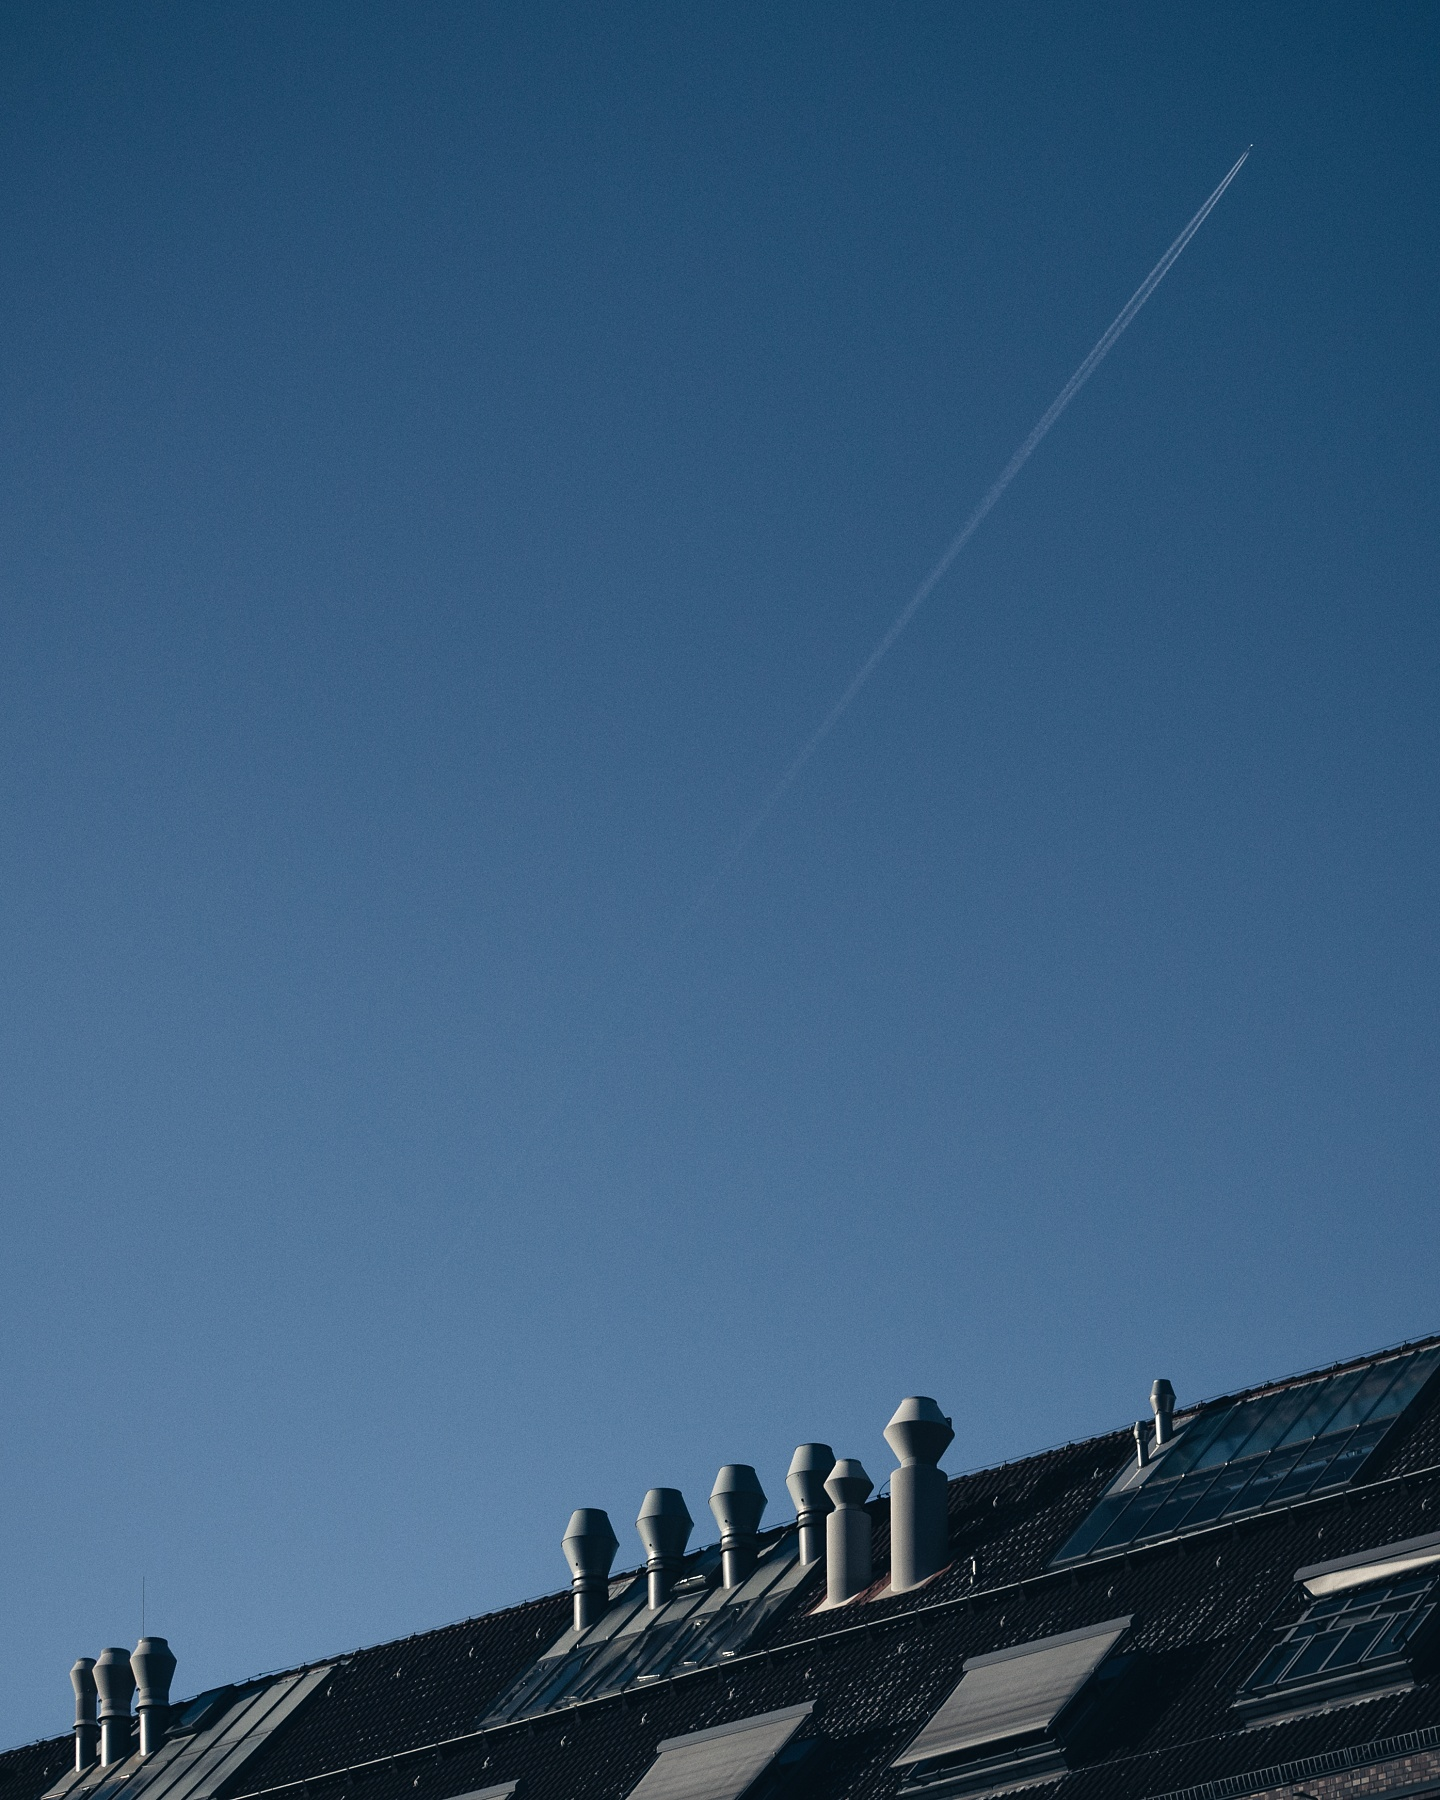 Airplane flying over a roof